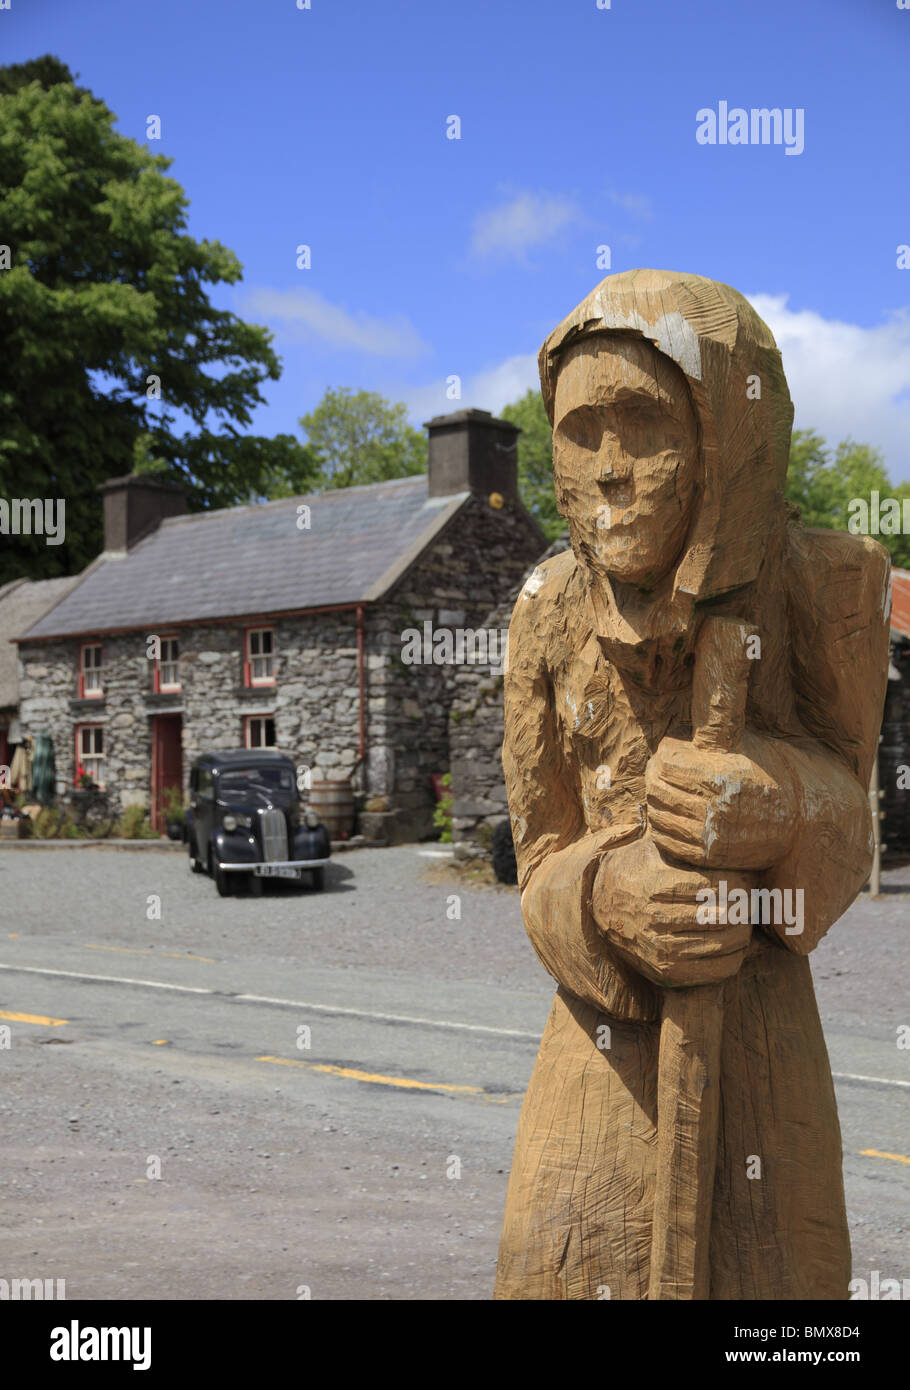 A carved wooden statue, known as 'The Druid', at Molly Gallivan's Cottage, Bonane, Co. Kerry, Rep. of - Stock Image